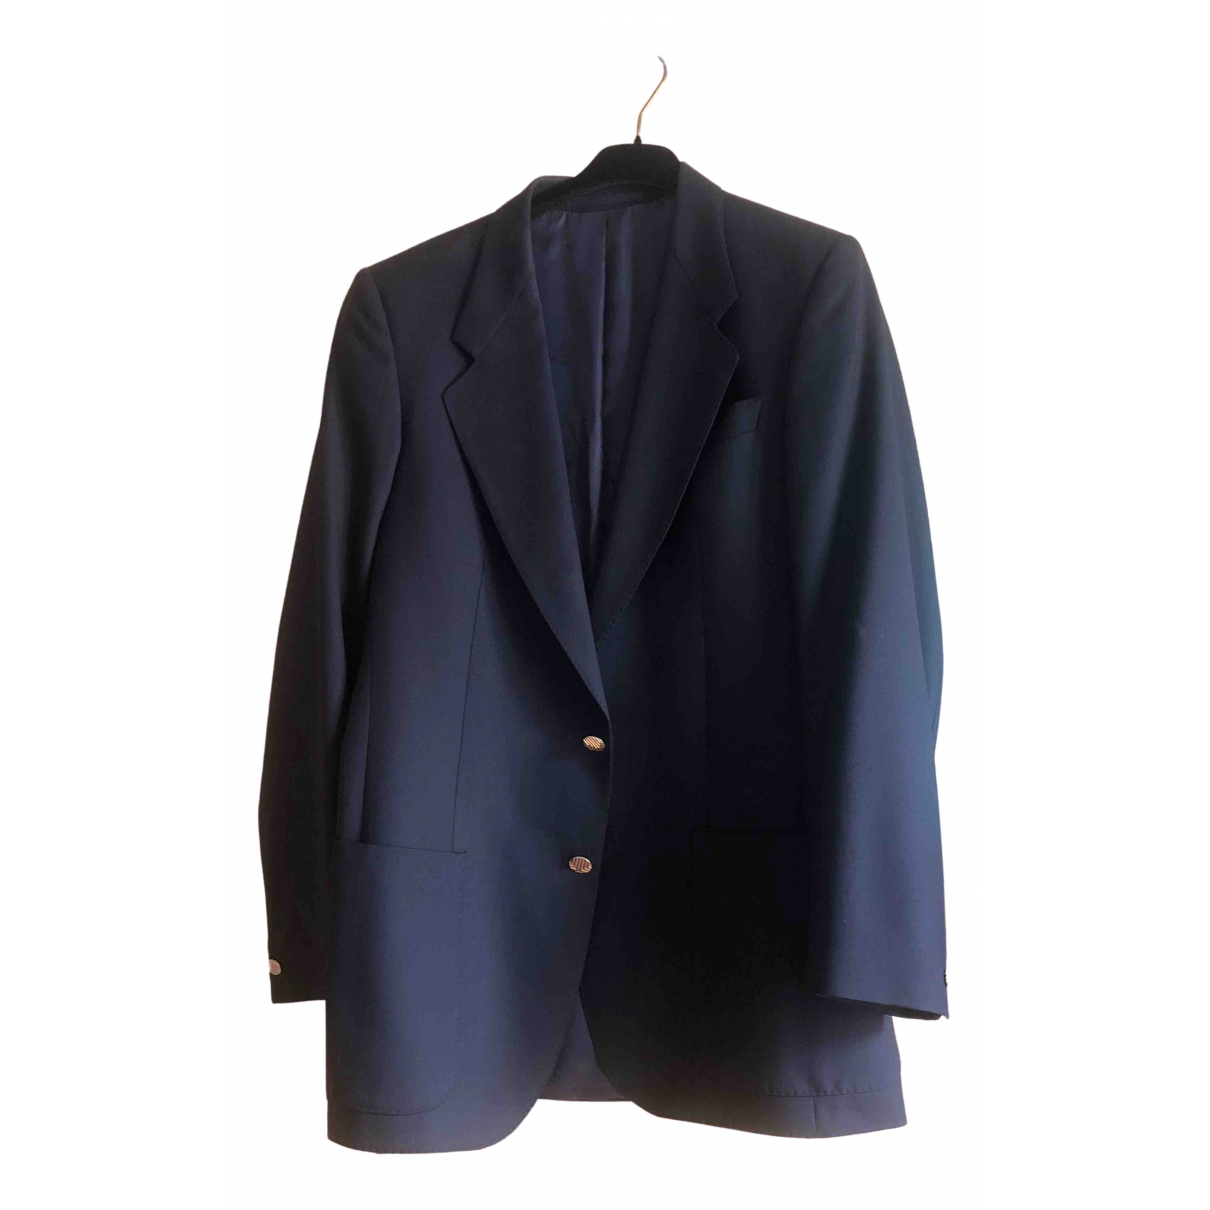 Lanvin \N Blue Wool Suits for Men L International